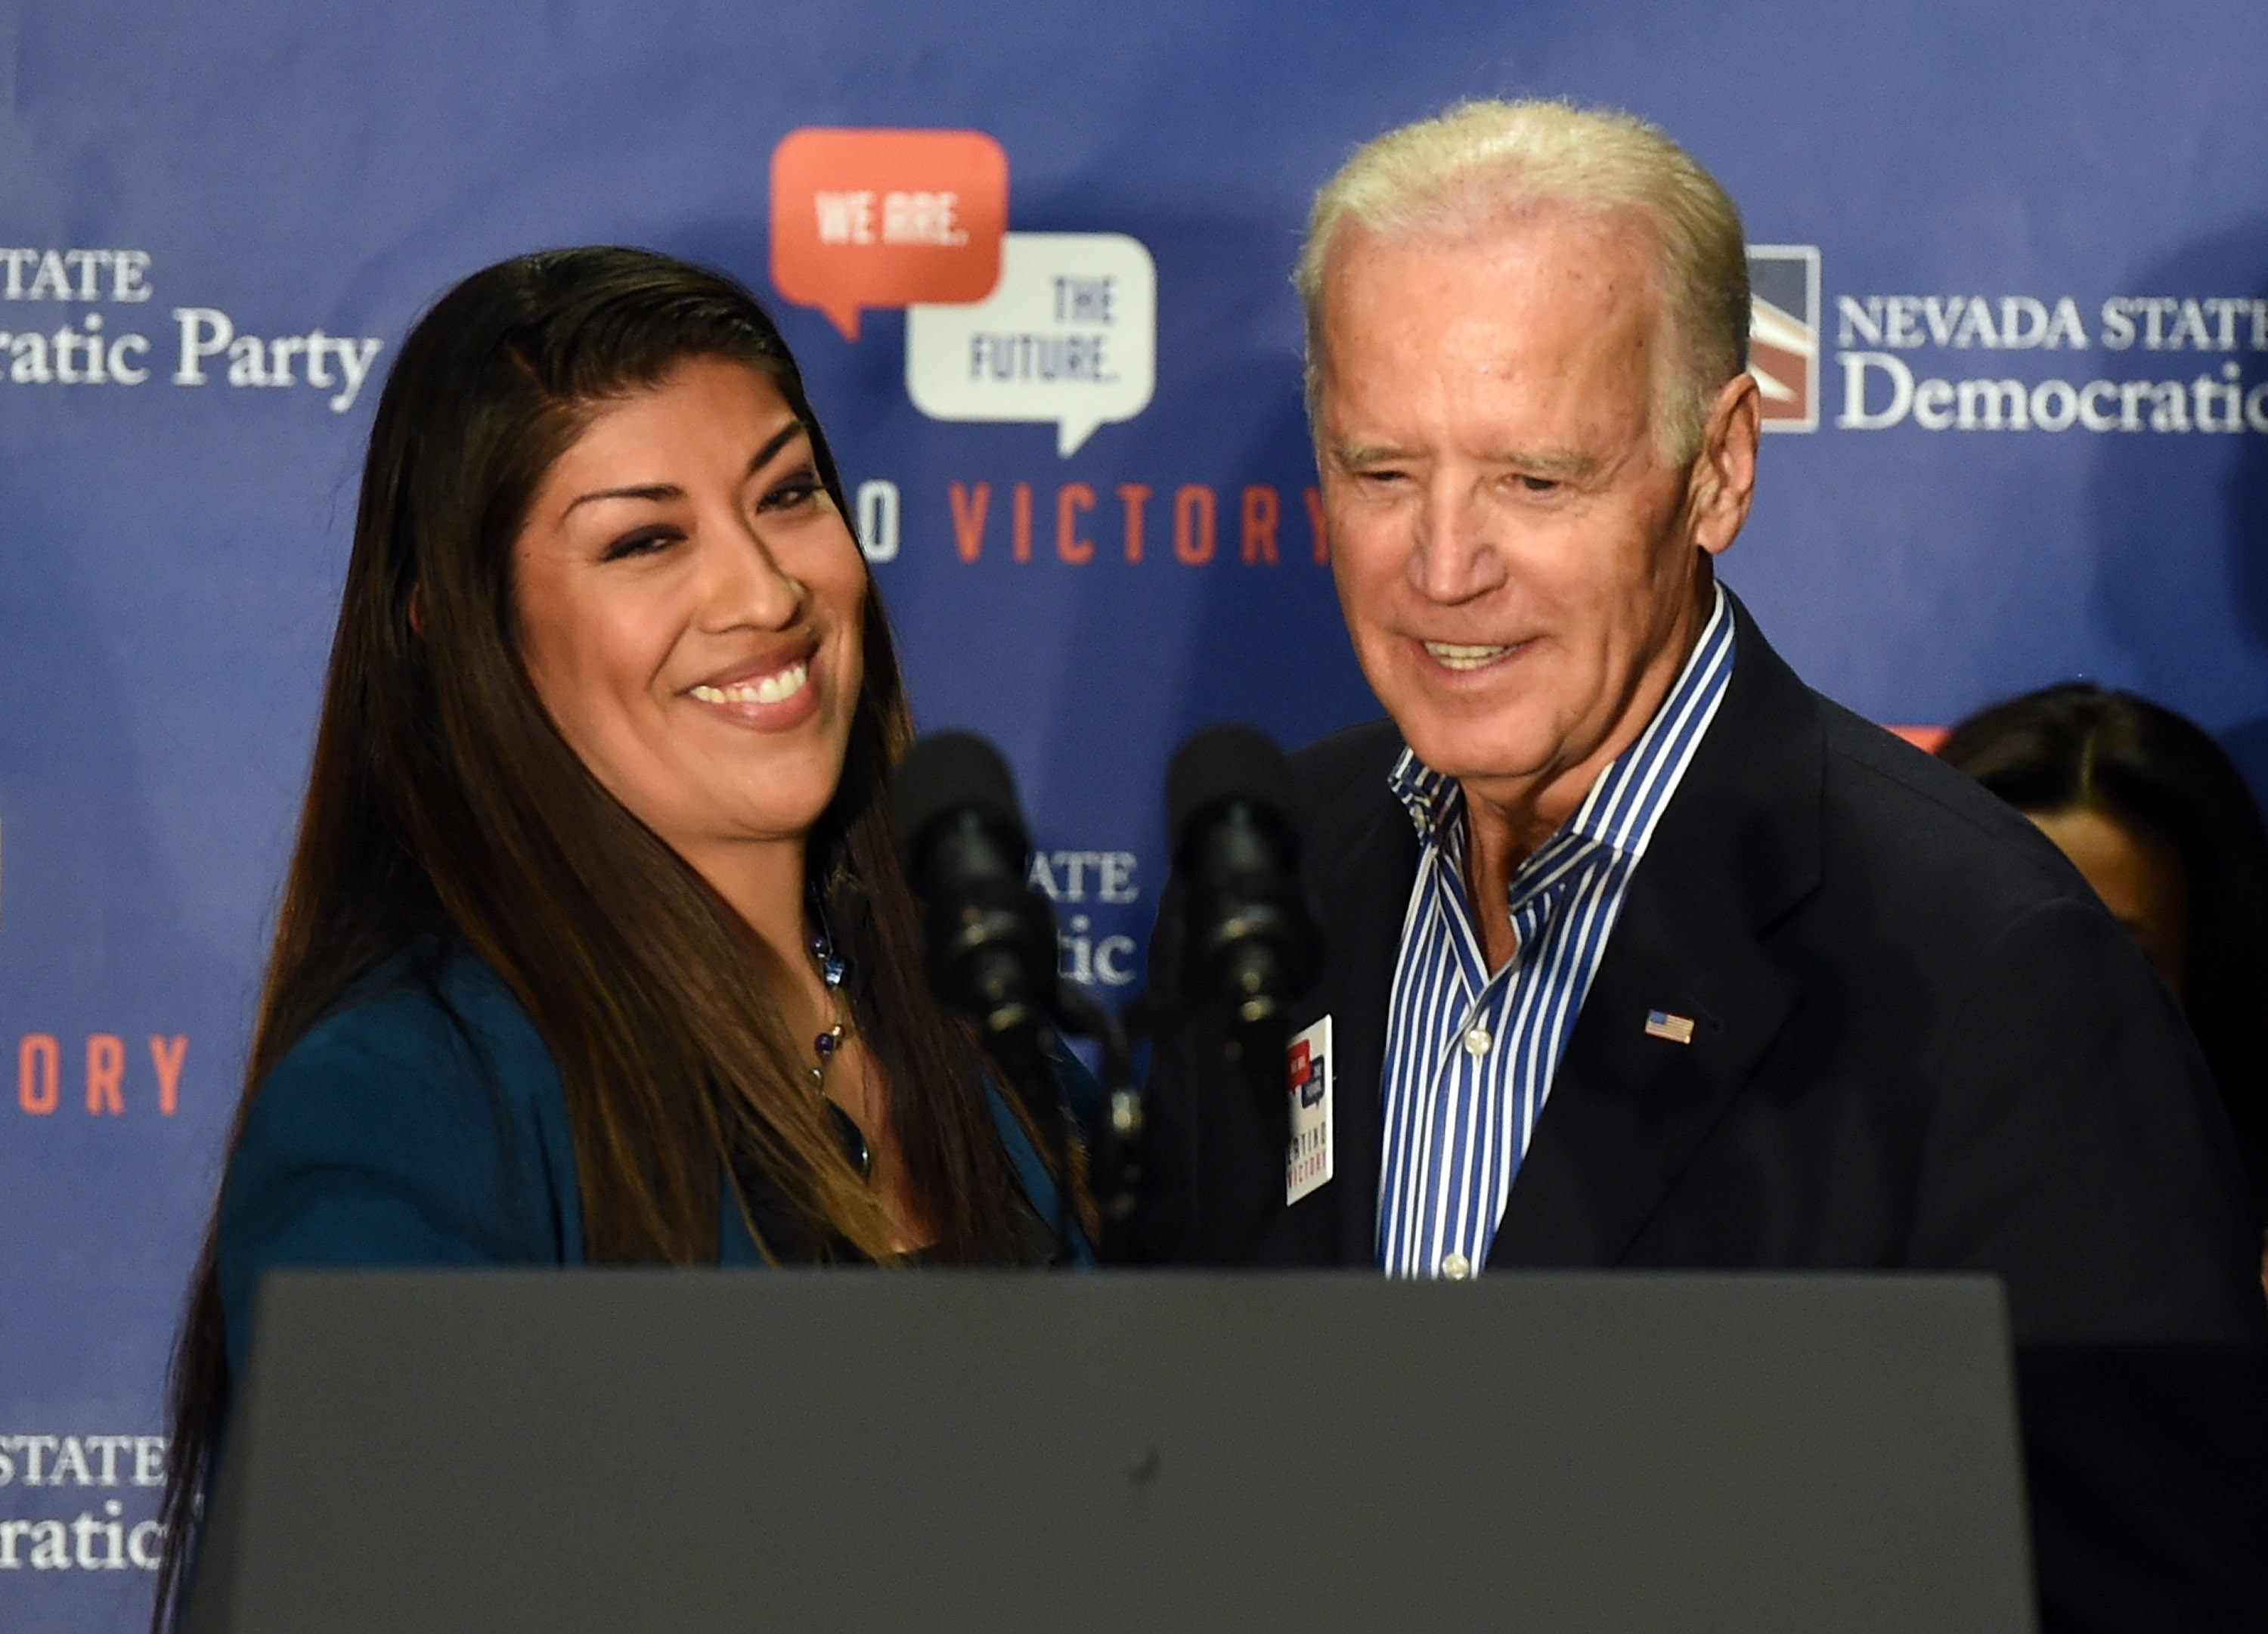 Democratic candidate for lieutenant governor and current Nevada Assemblywoman Lucy Flores introduces VP Joe Biden at a get-out-the-vote rally at a union hall on November 1, 2014 in Las Vegas, Nevada. (Ethan Miller/Getty Images)